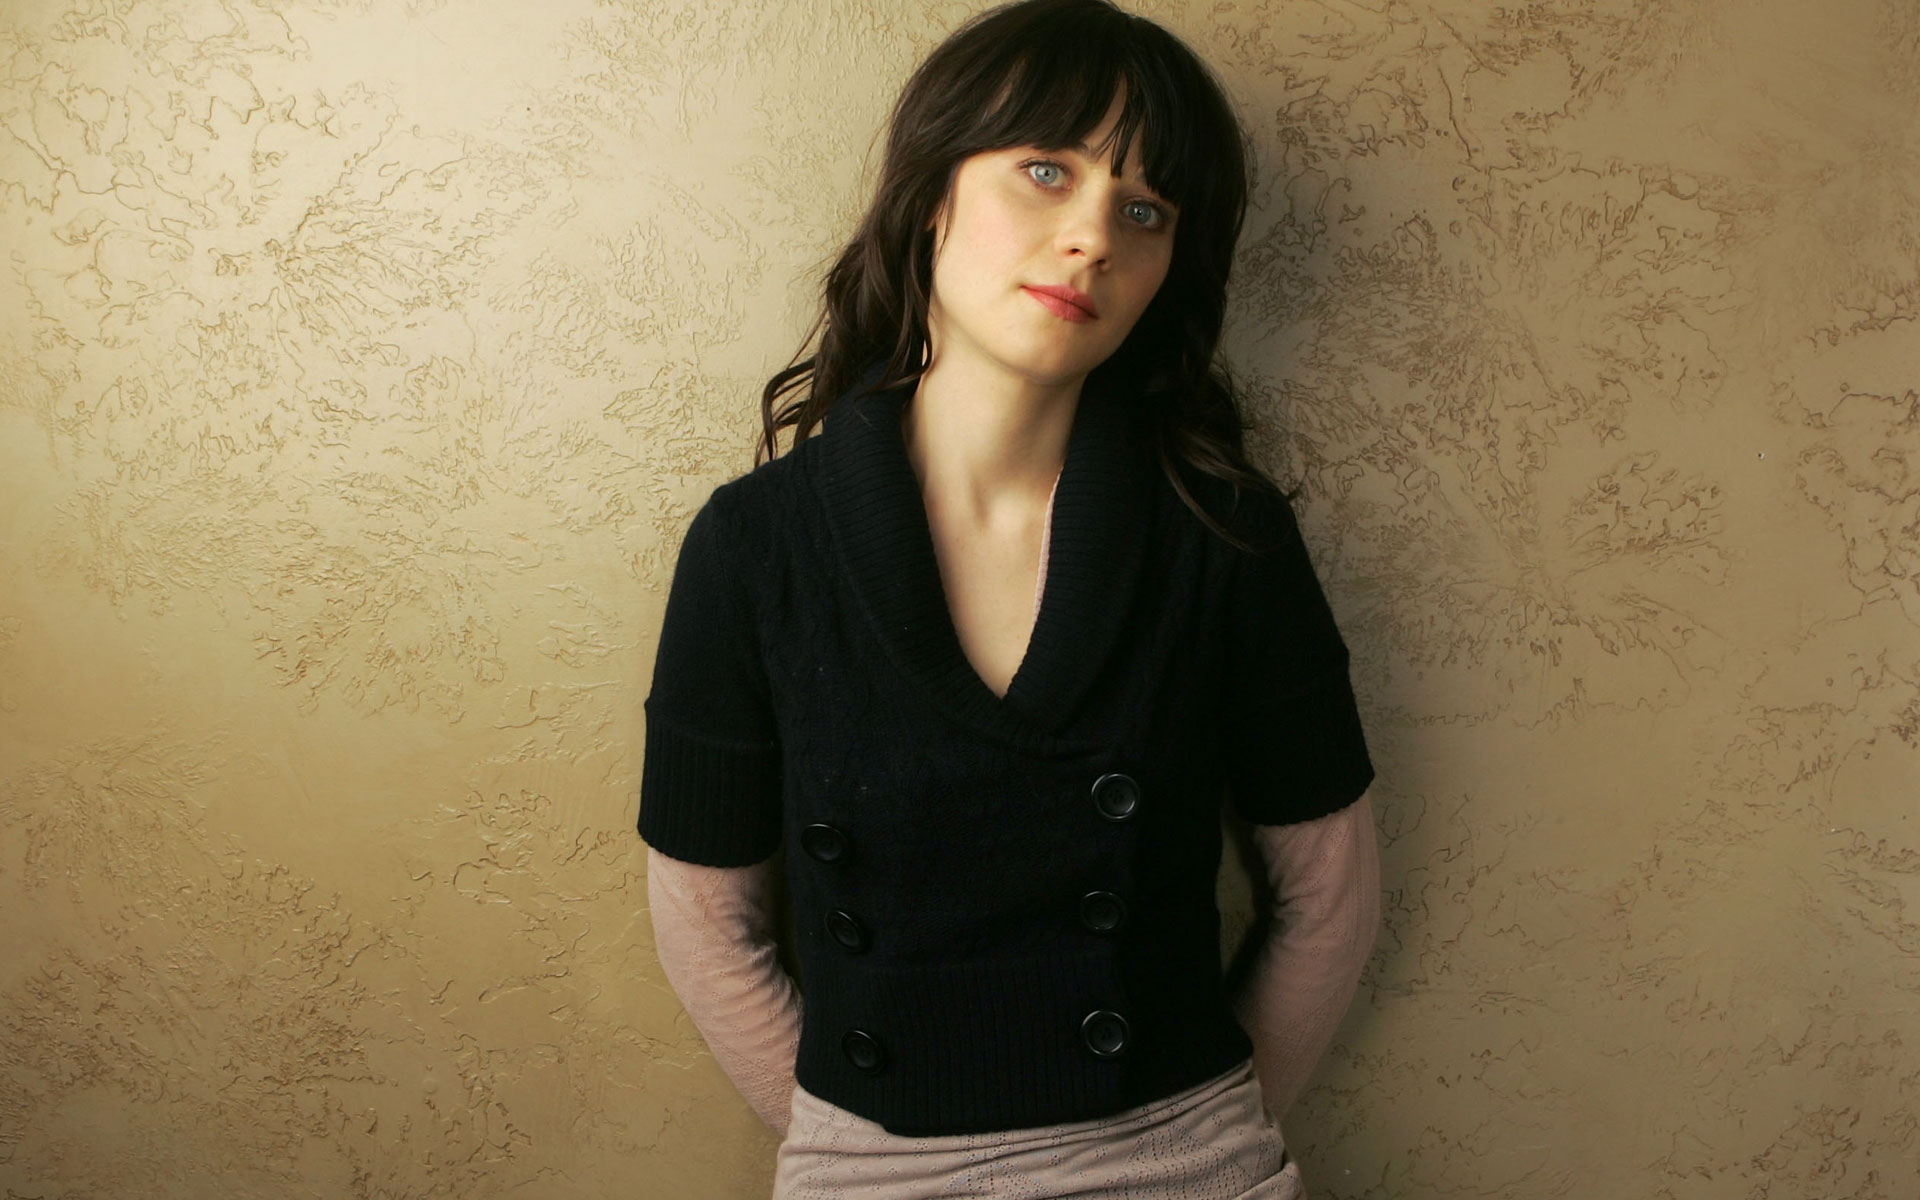 zooey deschanel hot 1920 - photo #8